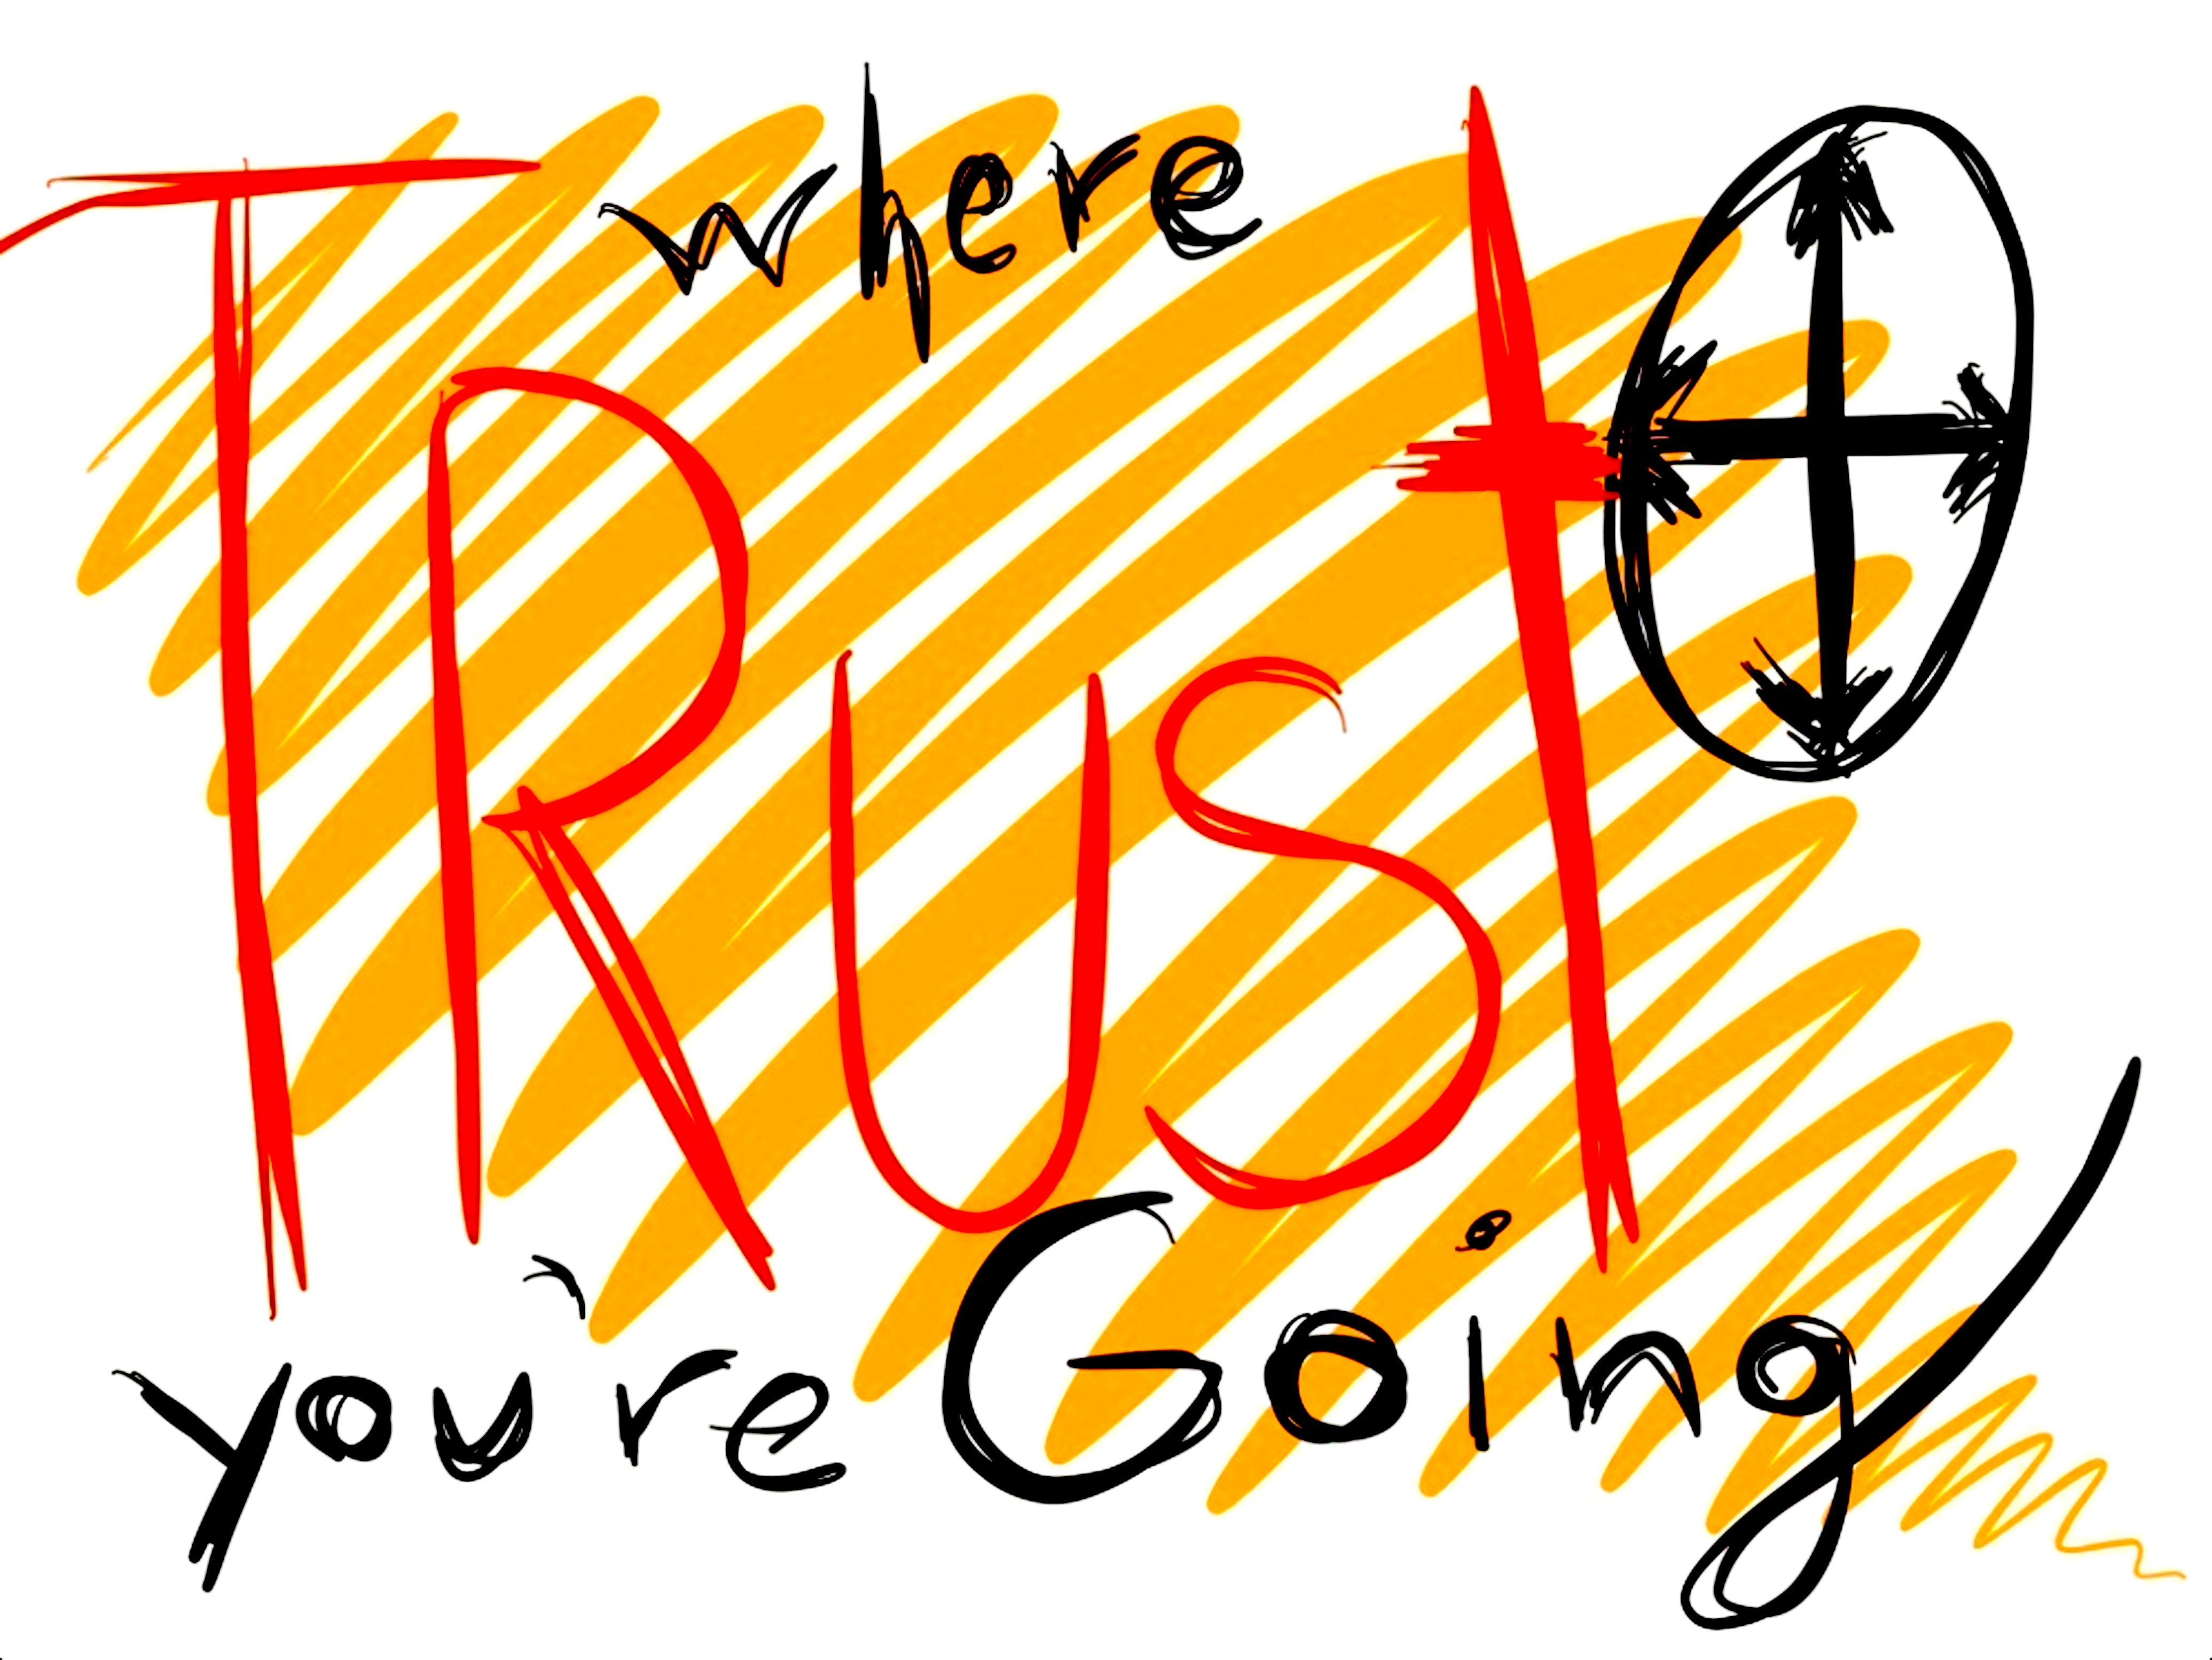 TRUST this one copy 2